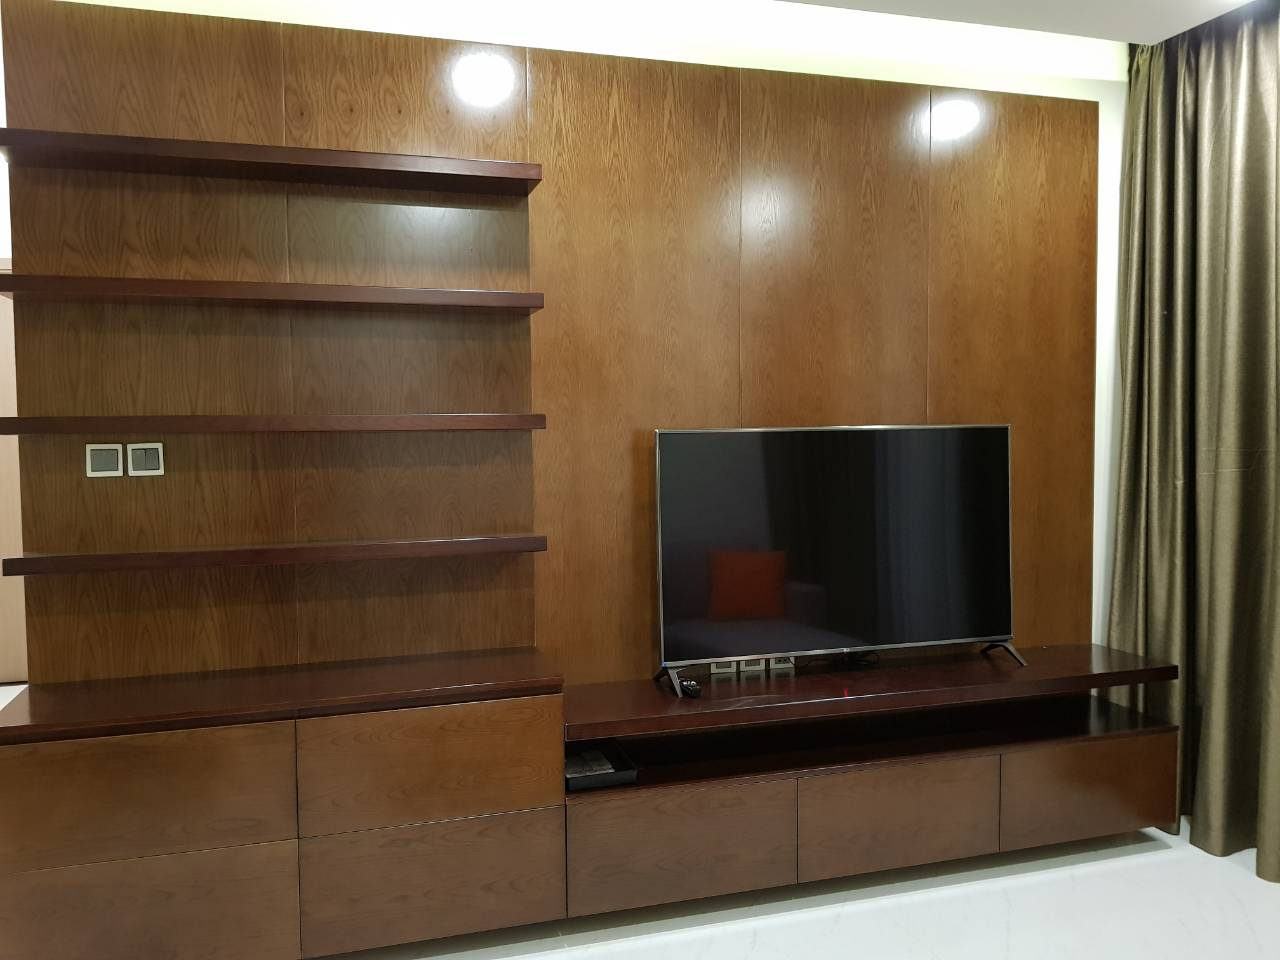 apartment for rent in HCMC BT105P557 Vu (2)